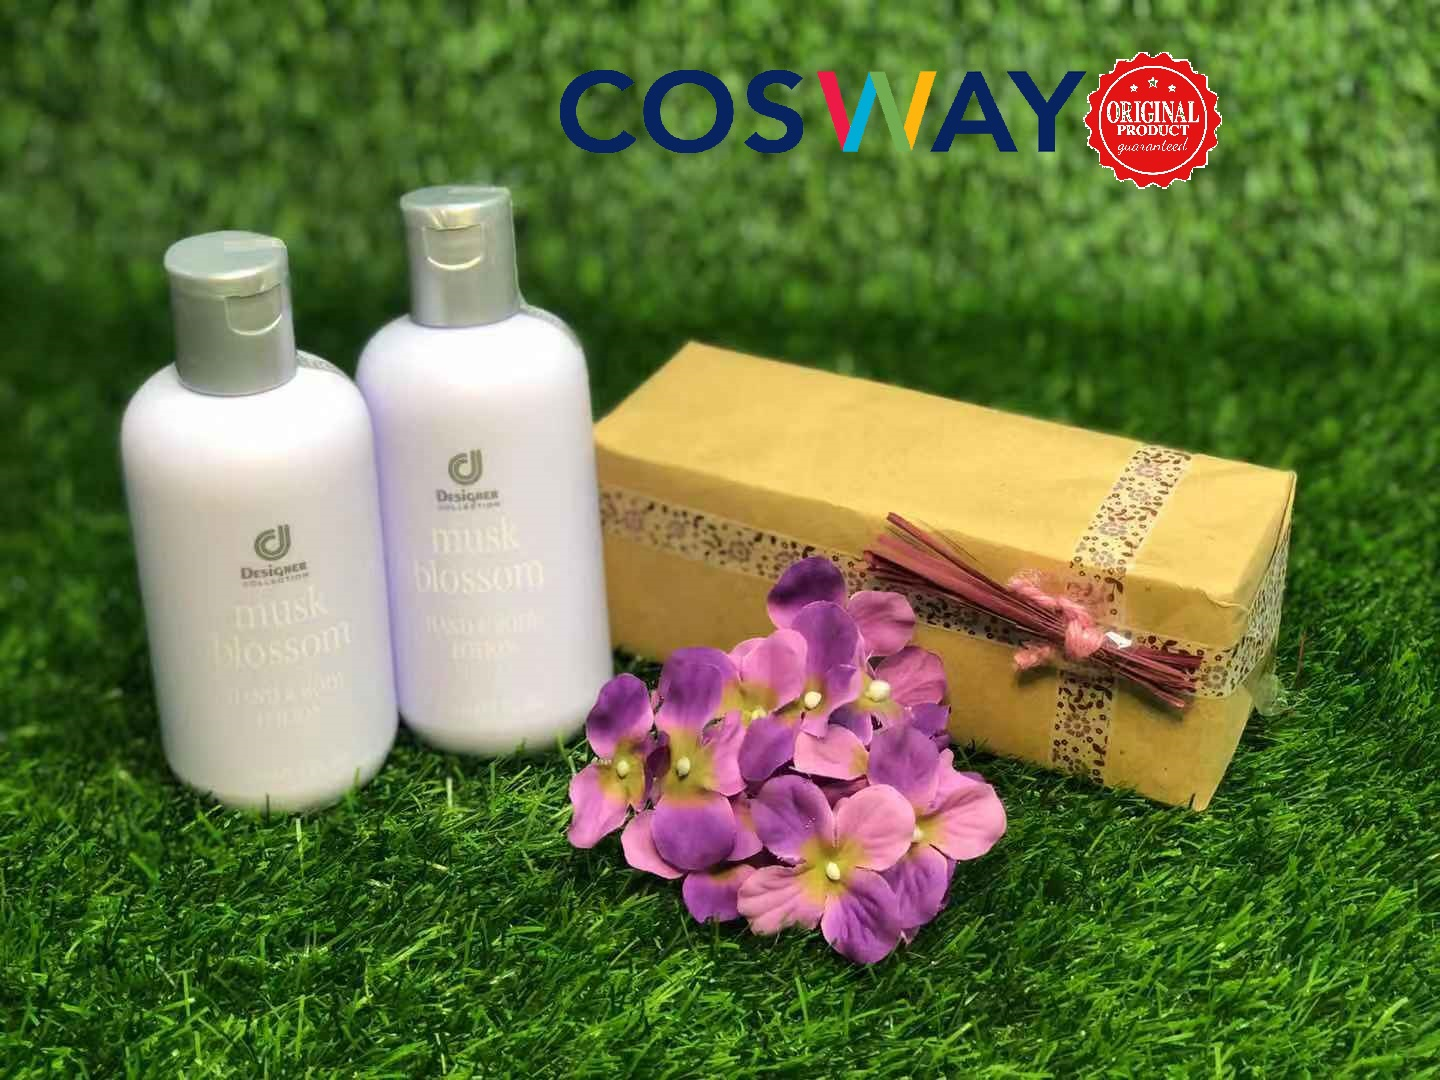 GS010- Cosway Designer Collection Musk Blossom Hand & Body Lotion  - Gift Set 2in1 (Original Cosway)